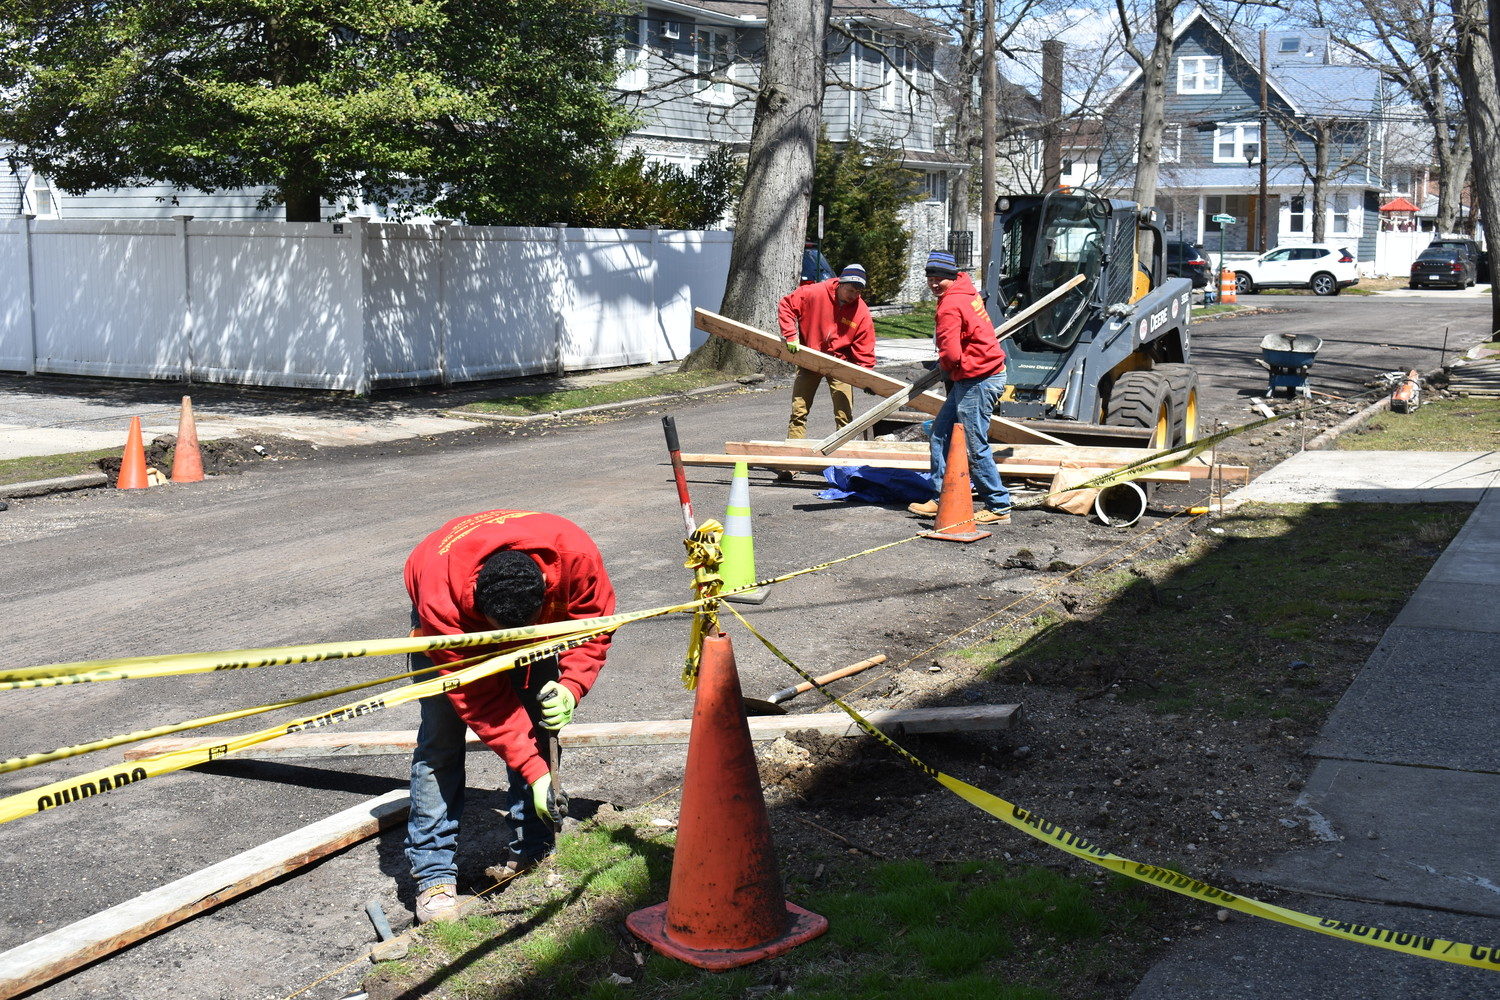 American Paving and Masonry Corp. workers repaired the curbs on Park Place in Cedarhurst